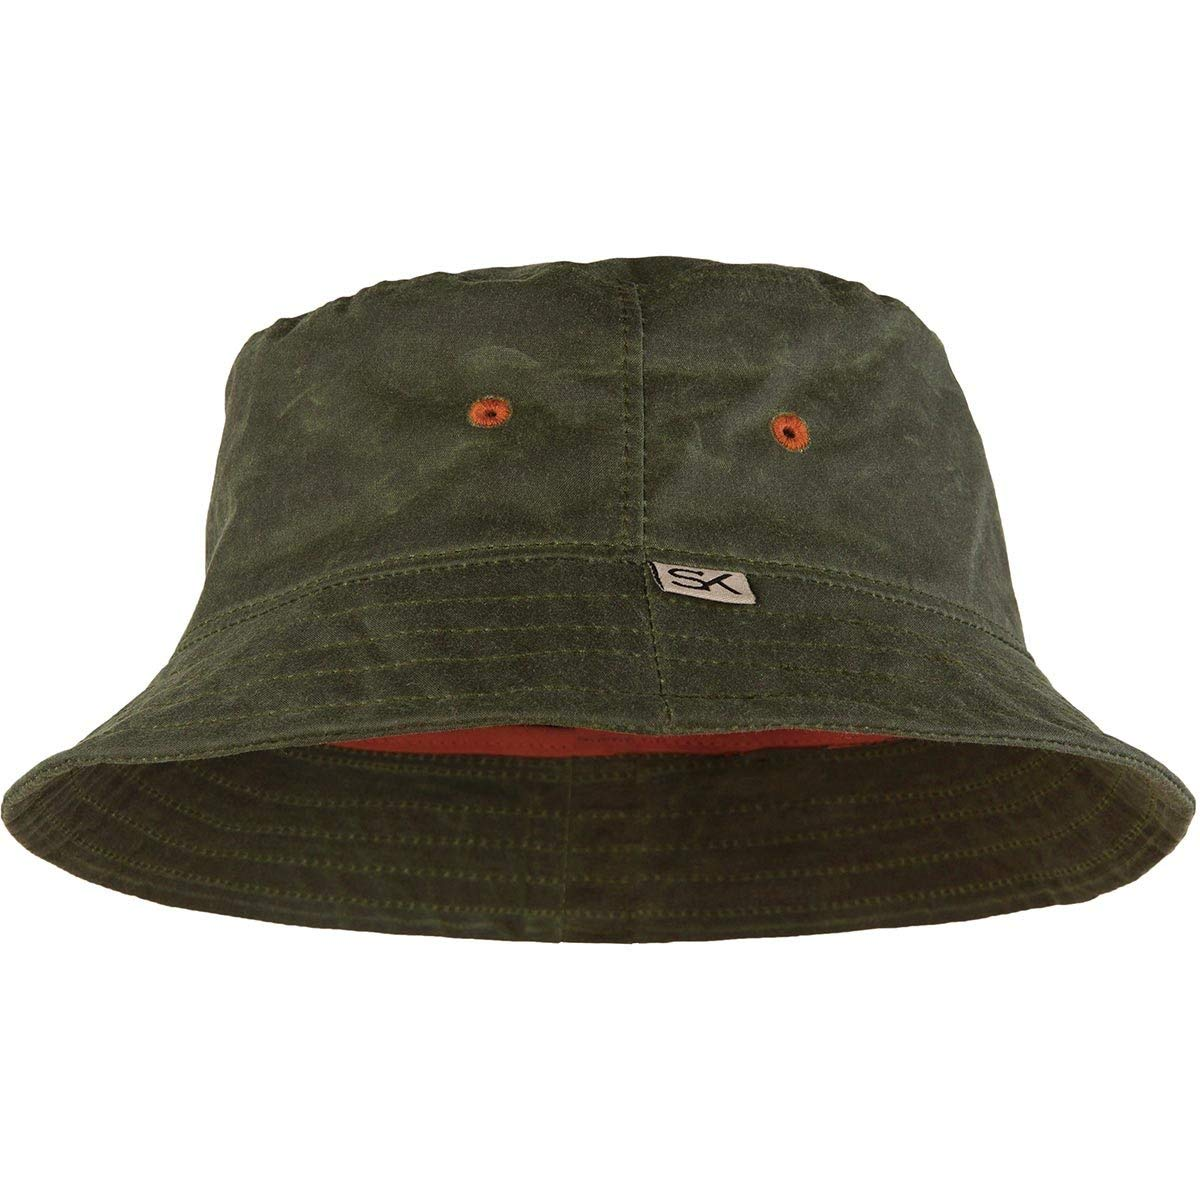 92e351b7977ad7 Get Quotations · Stormy Kromer The Waxed Bucket Hat, Color: Olive  (51130-050-415